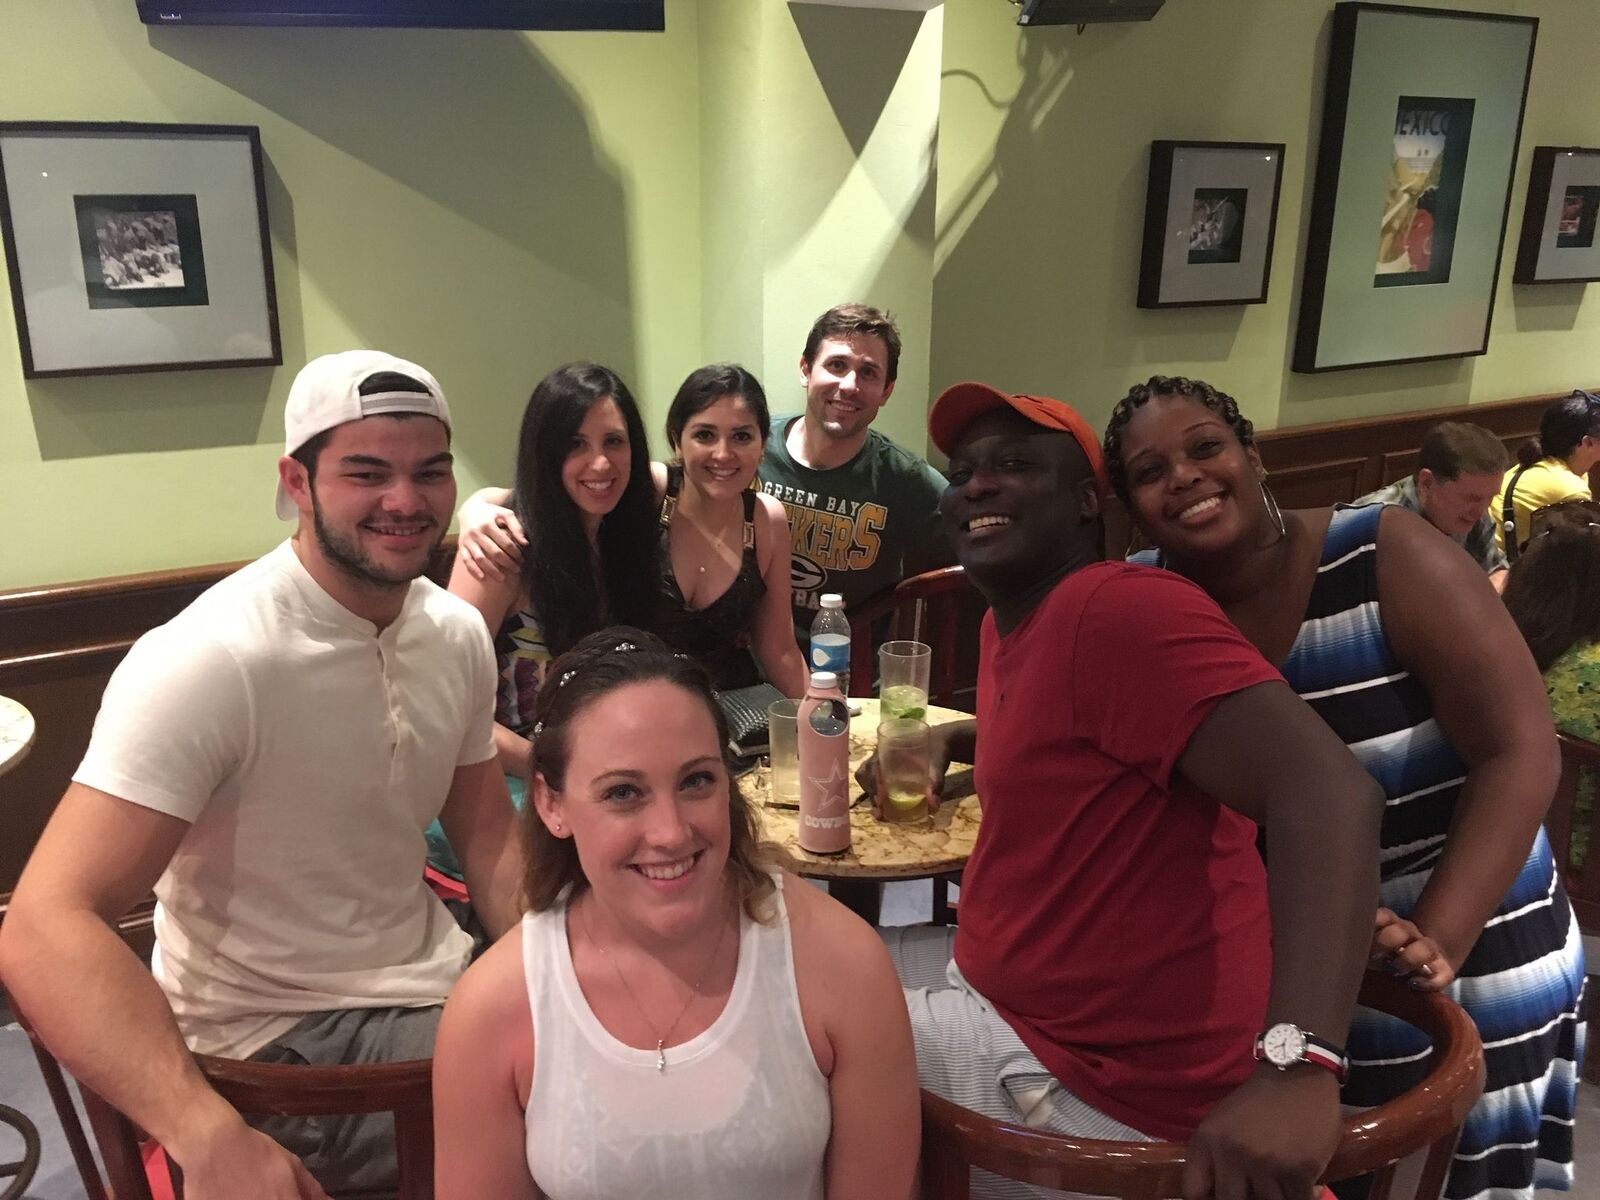 Photo of a group of people hanging out